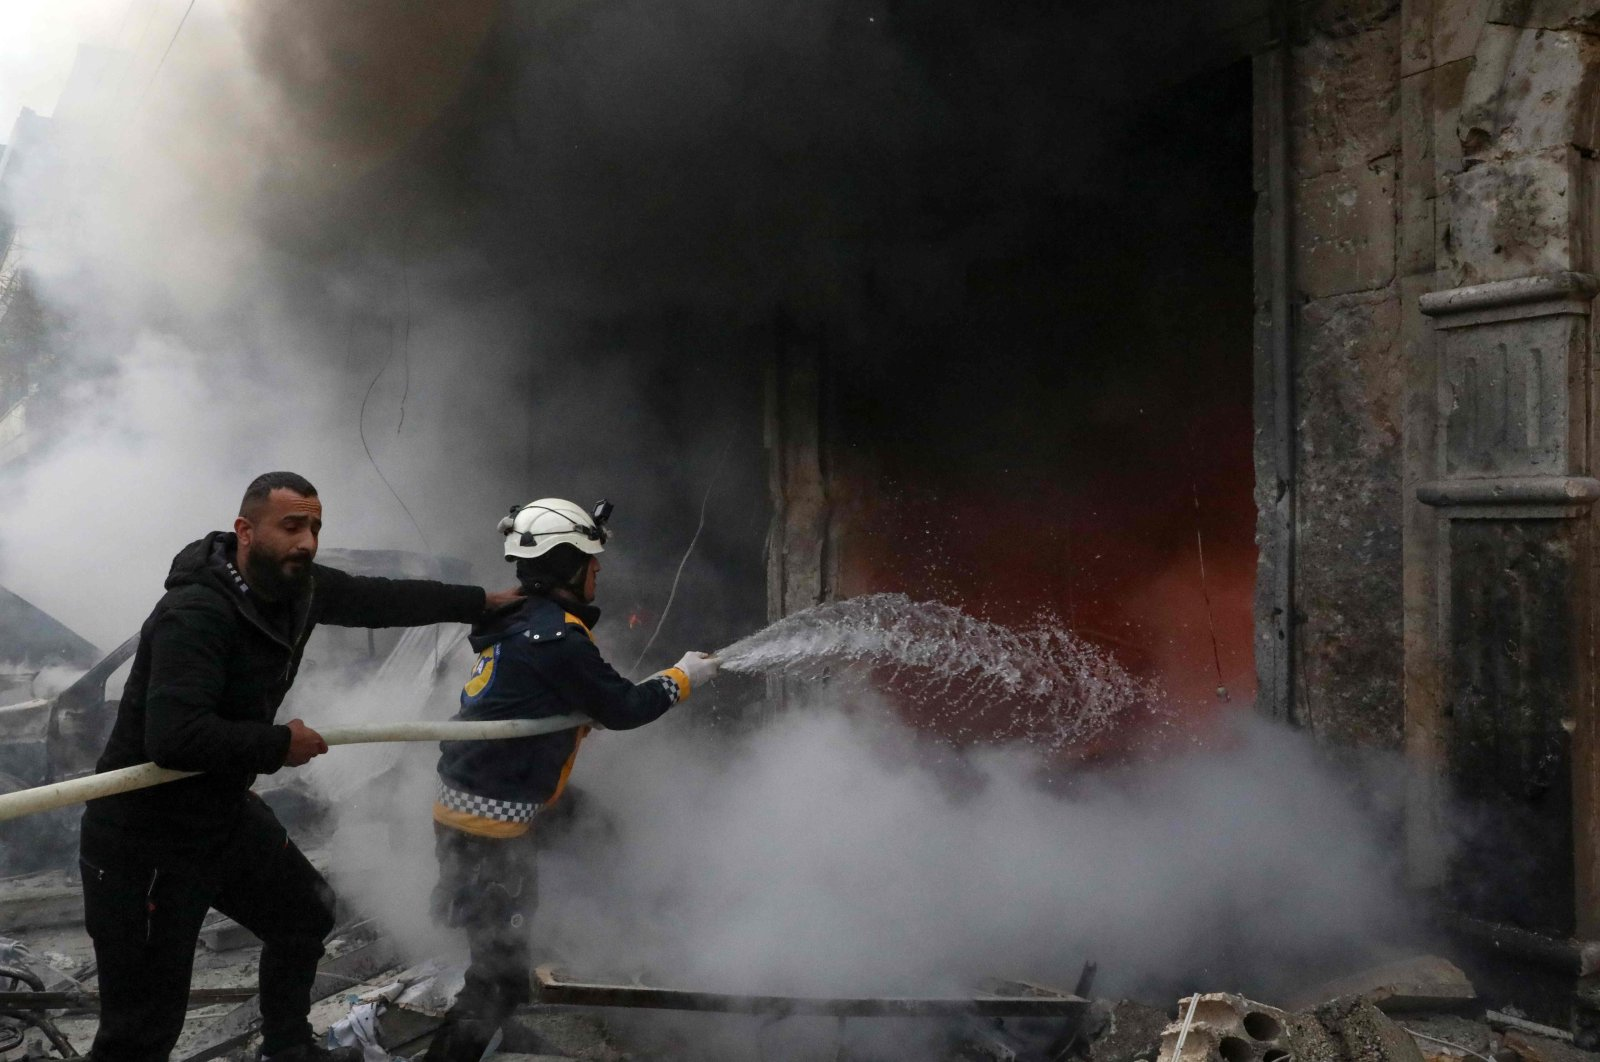 Rescue workers extinguish a fire caused by a suspected YPG terrorist attack in the town of Azaz in the opposition-controlled northern countryside of Syria's Aleppo province, Jan. 31, 2021. (AFP Photo)